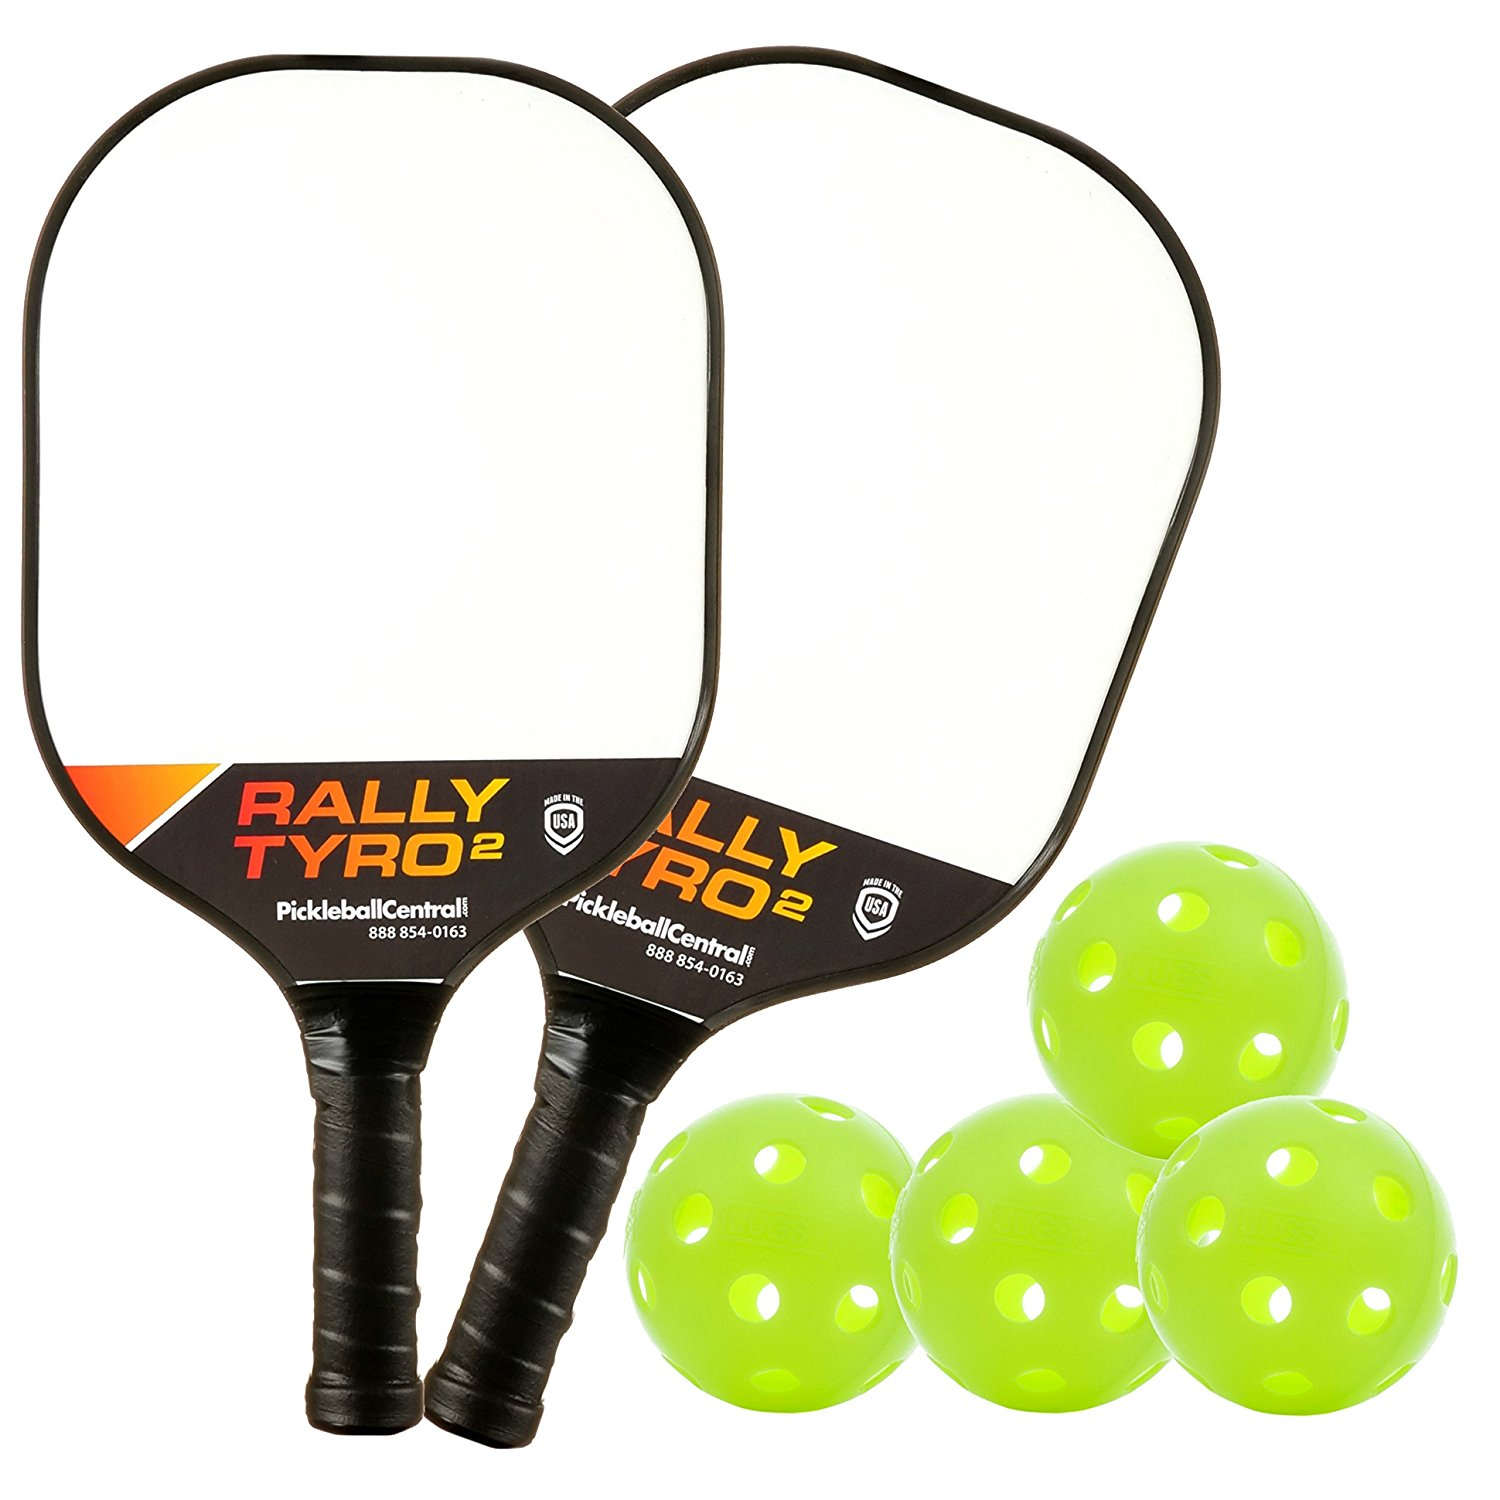 Rally Tryo 2 Composite Pickleball Paddle Bundle with Balls